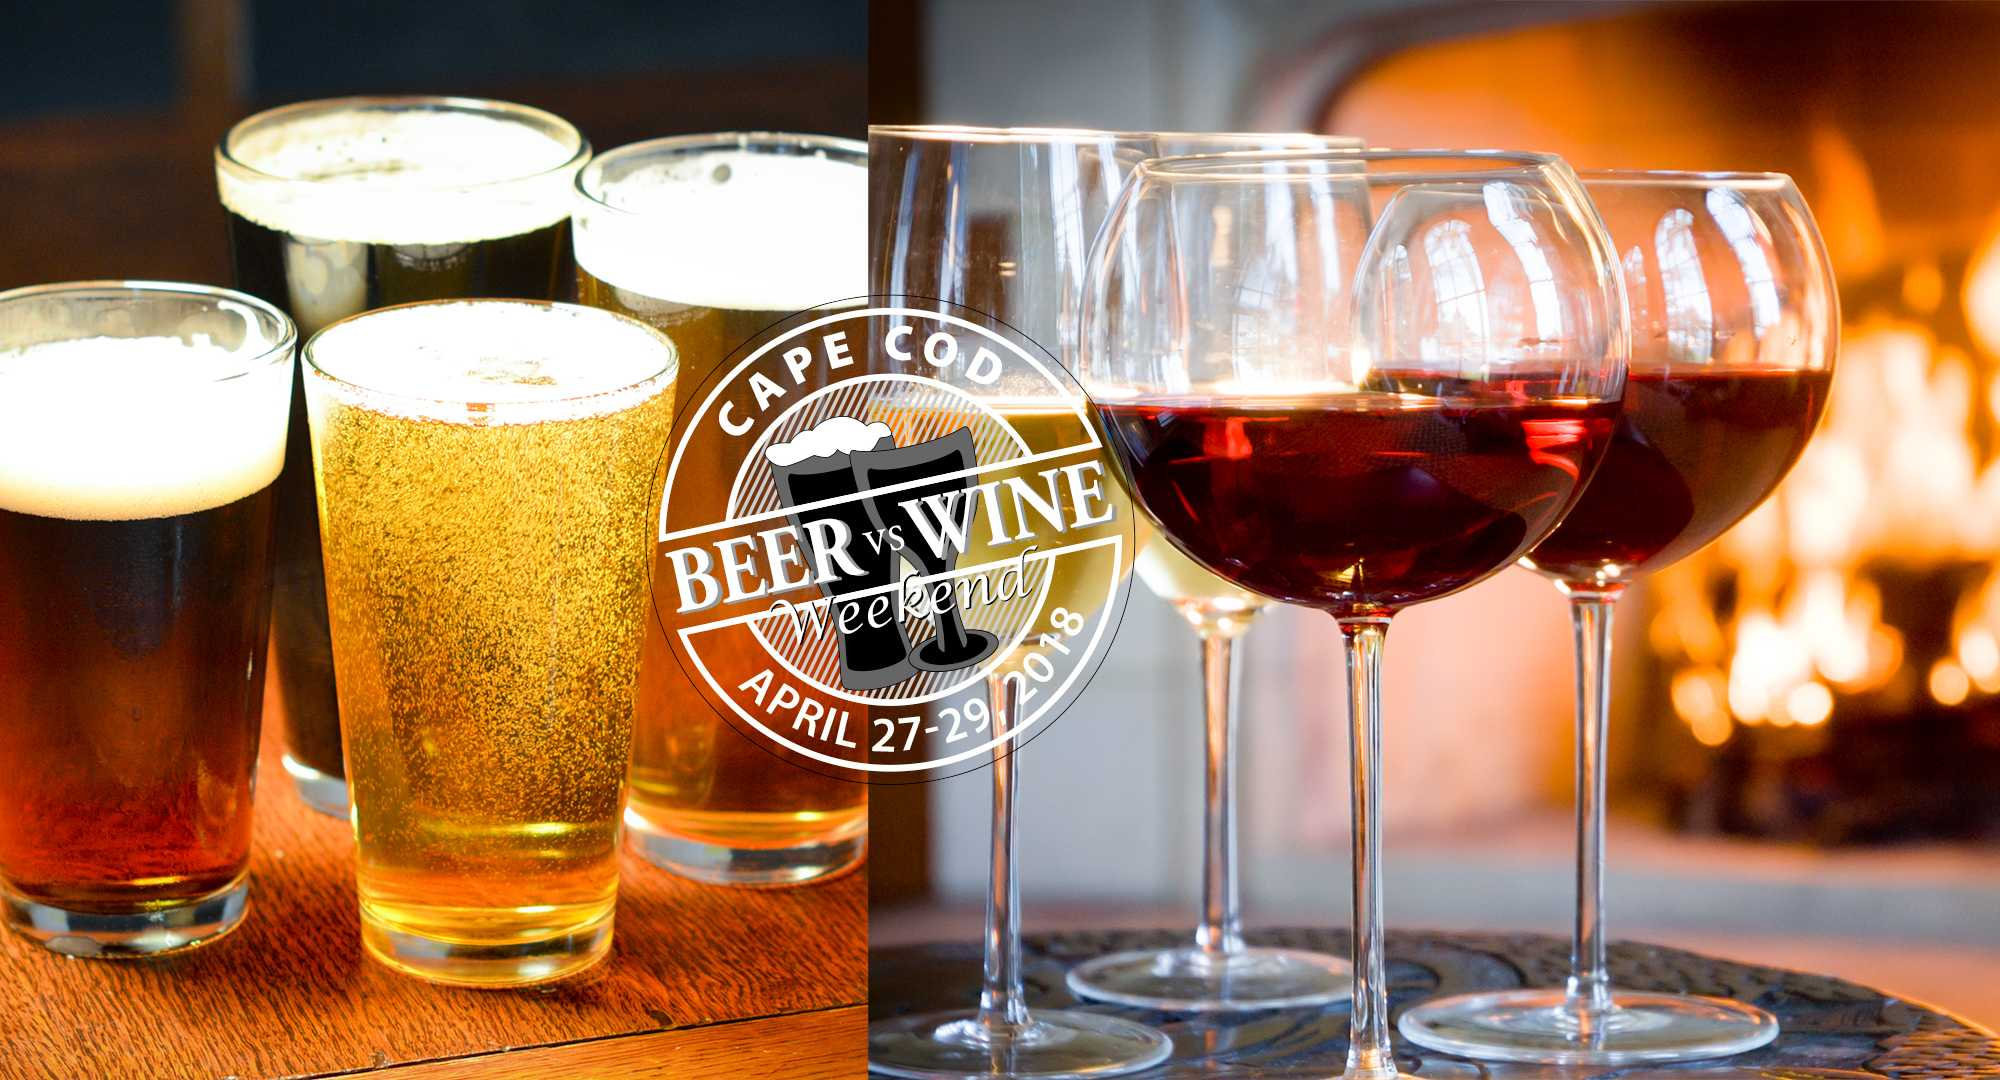 Cape Cod Beer vs Wine Weekend